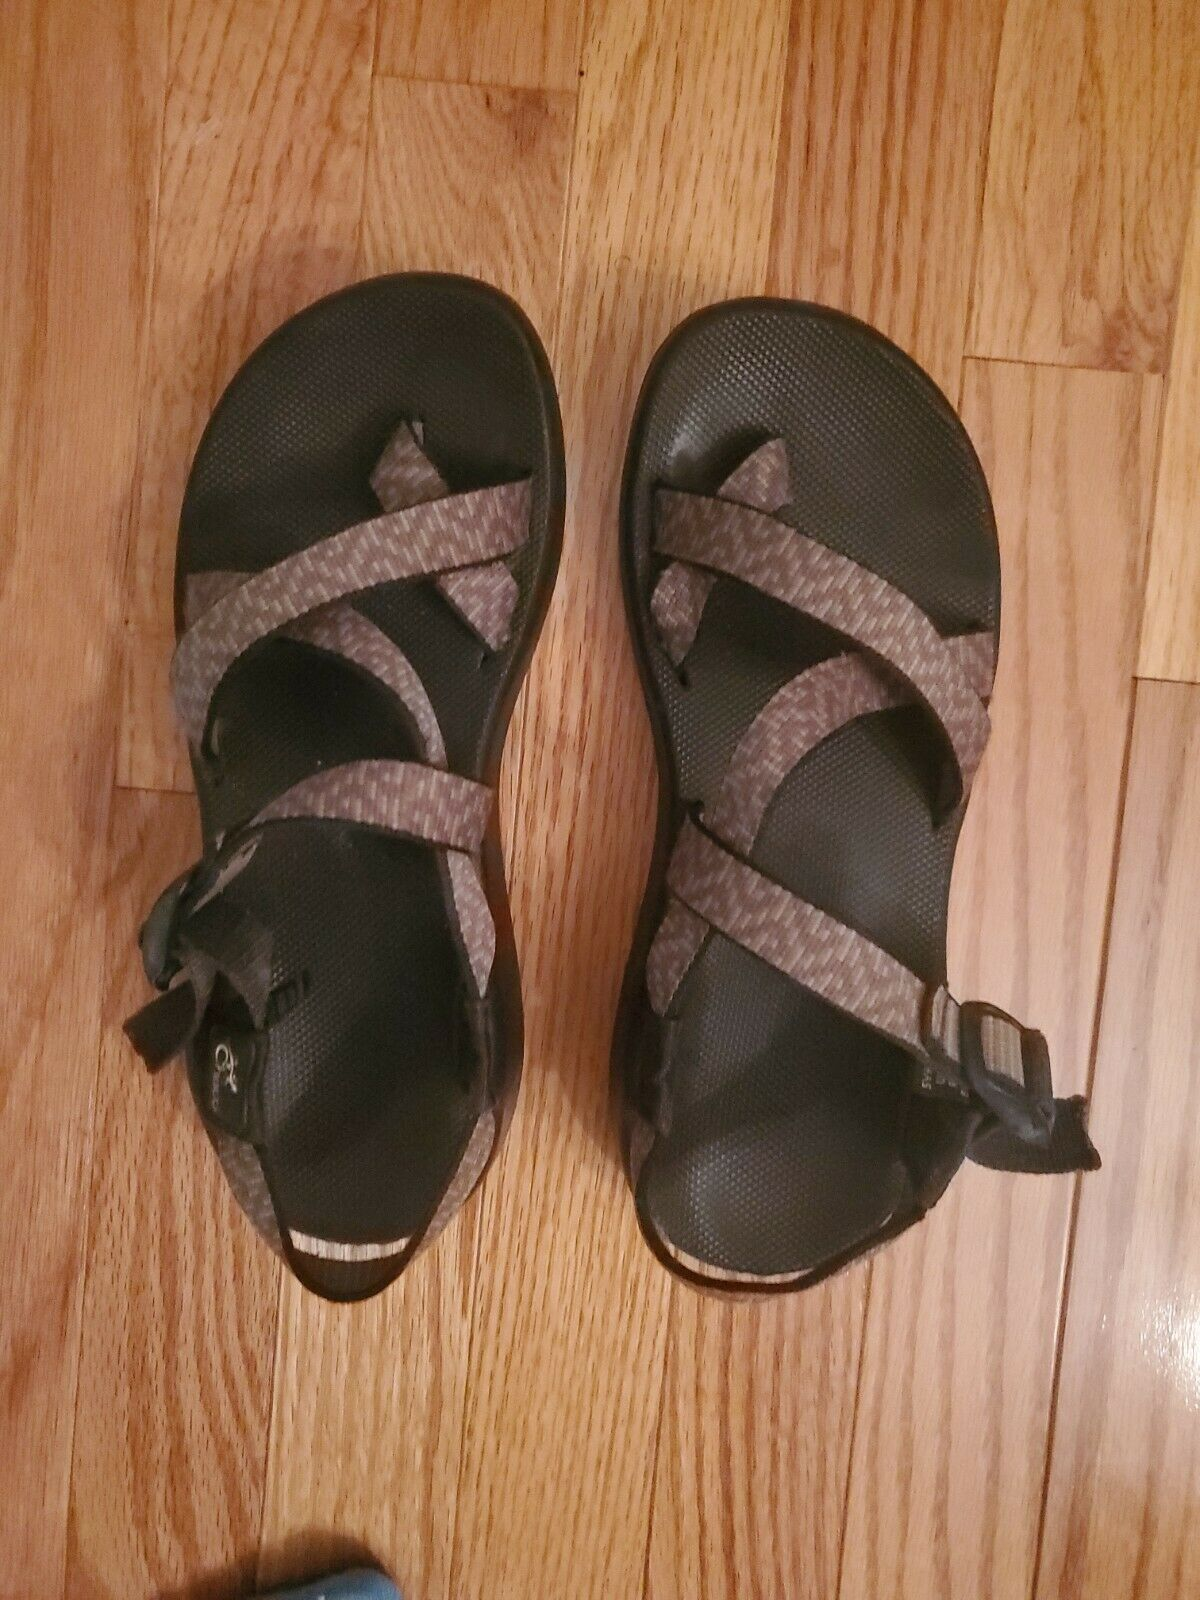 CHACO Women's Size 8 Strappy Sandals - image 8